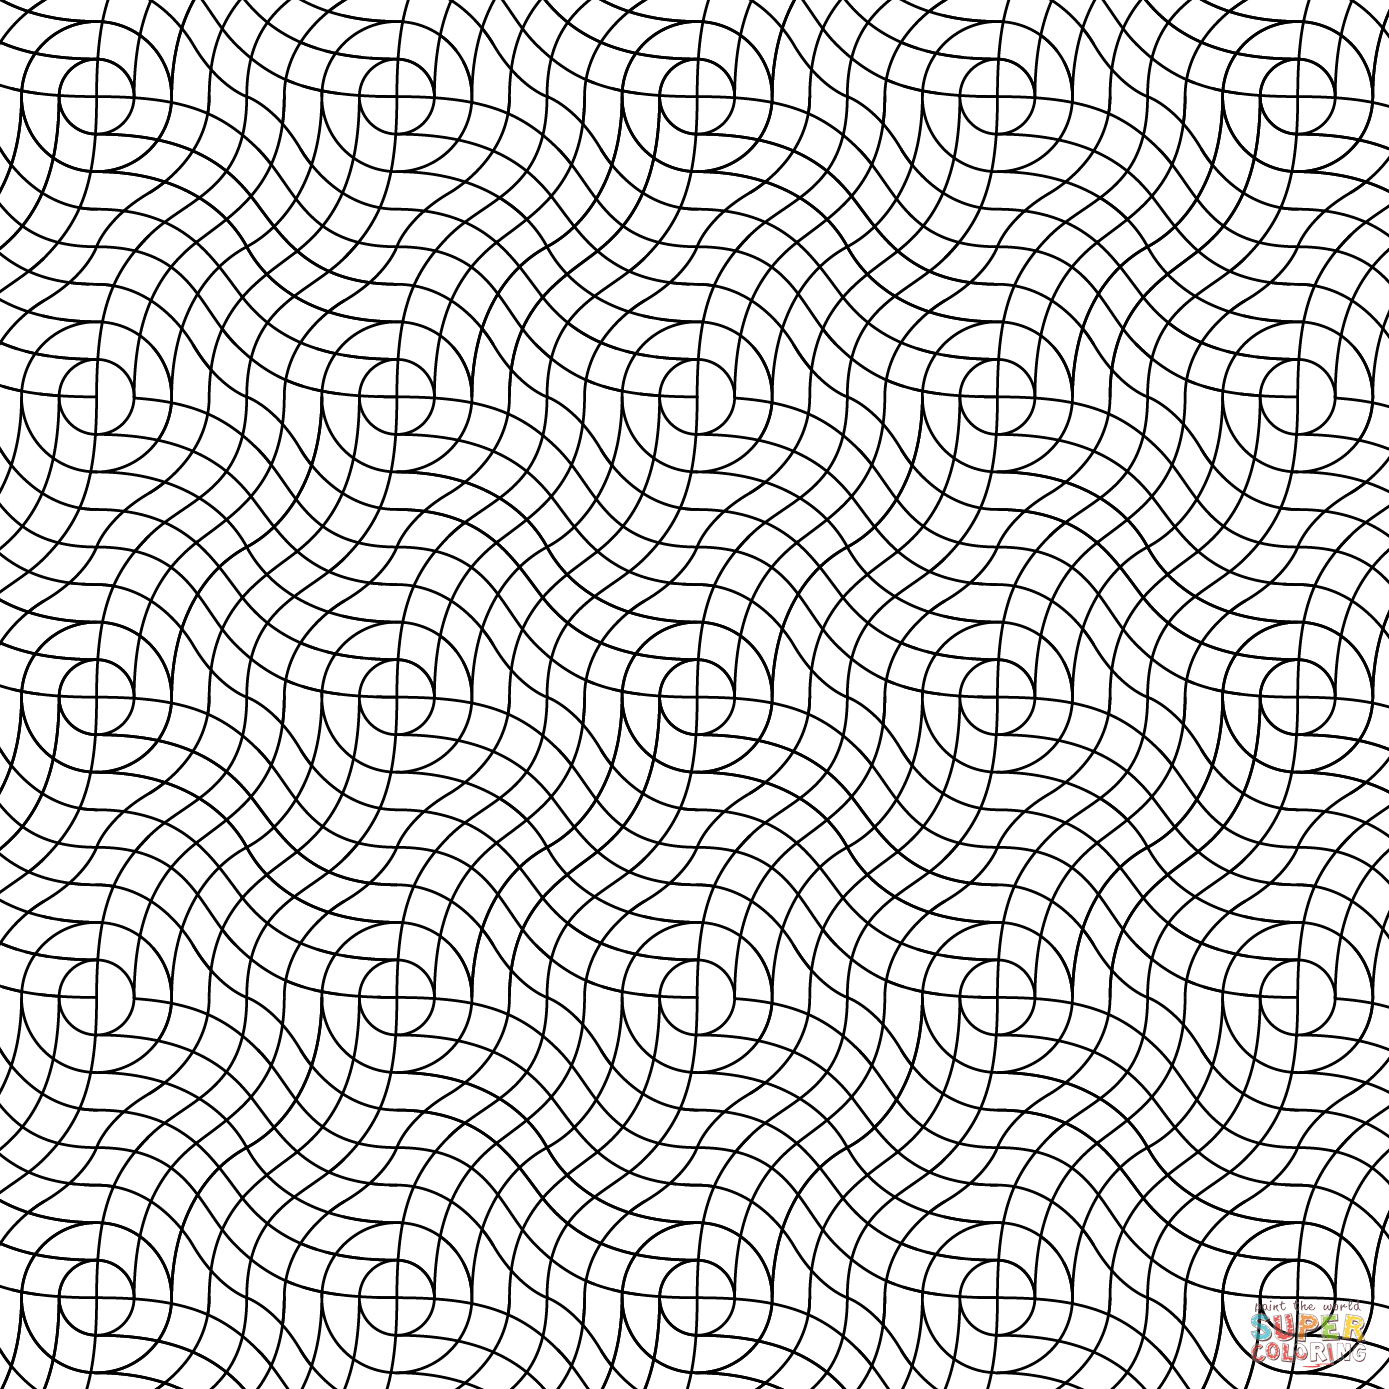 Coloring pages patterns - Wavy Weave Pattern Coloring Page From Pattern Category Select From 25743 Printable Crafts Of Cartoons Nature Animals Bible And Many More